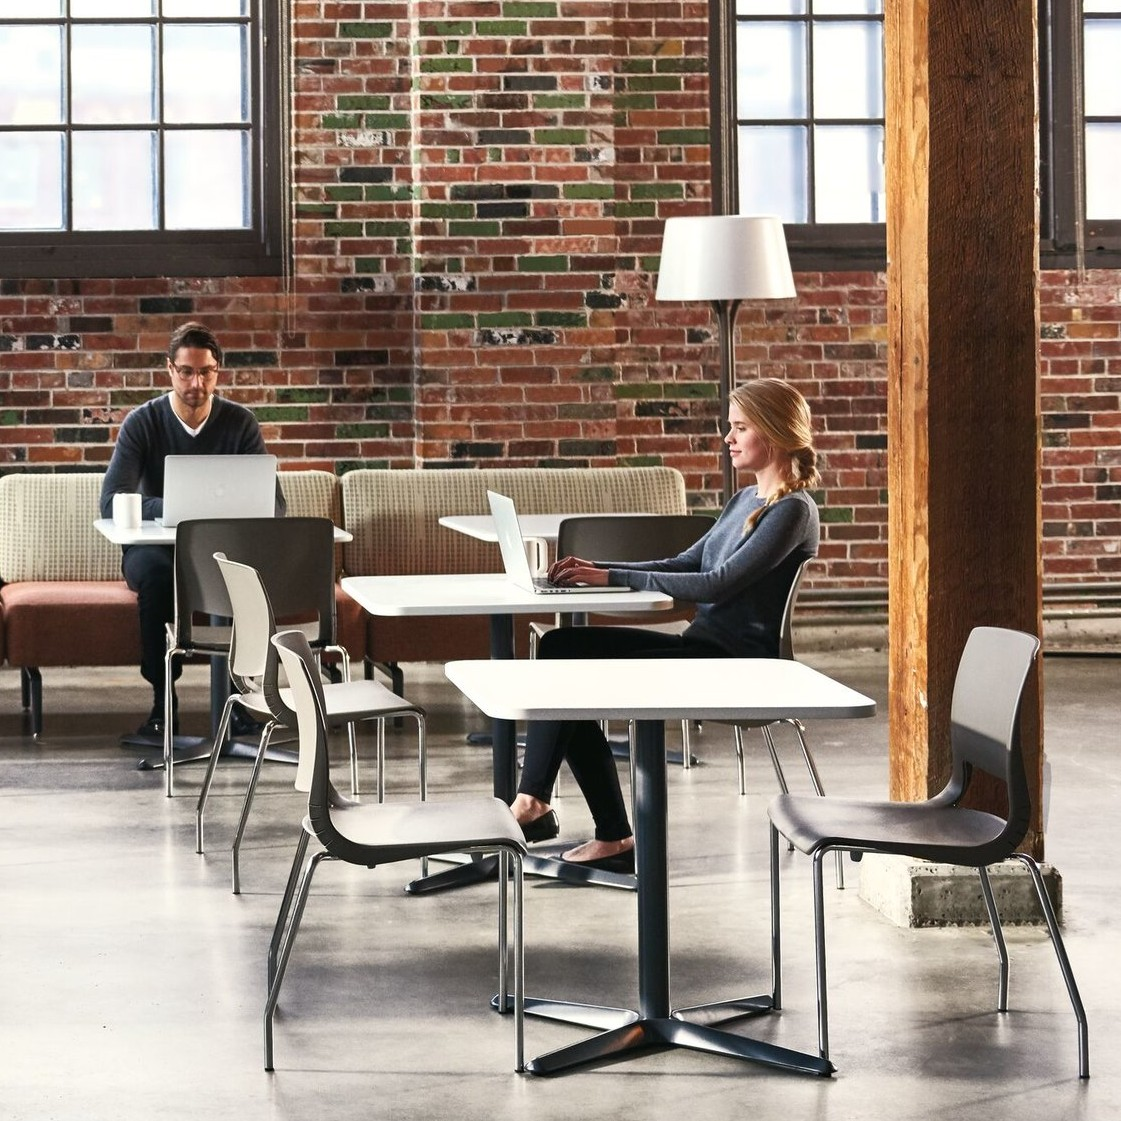 Office design should embrace the new digital workplace